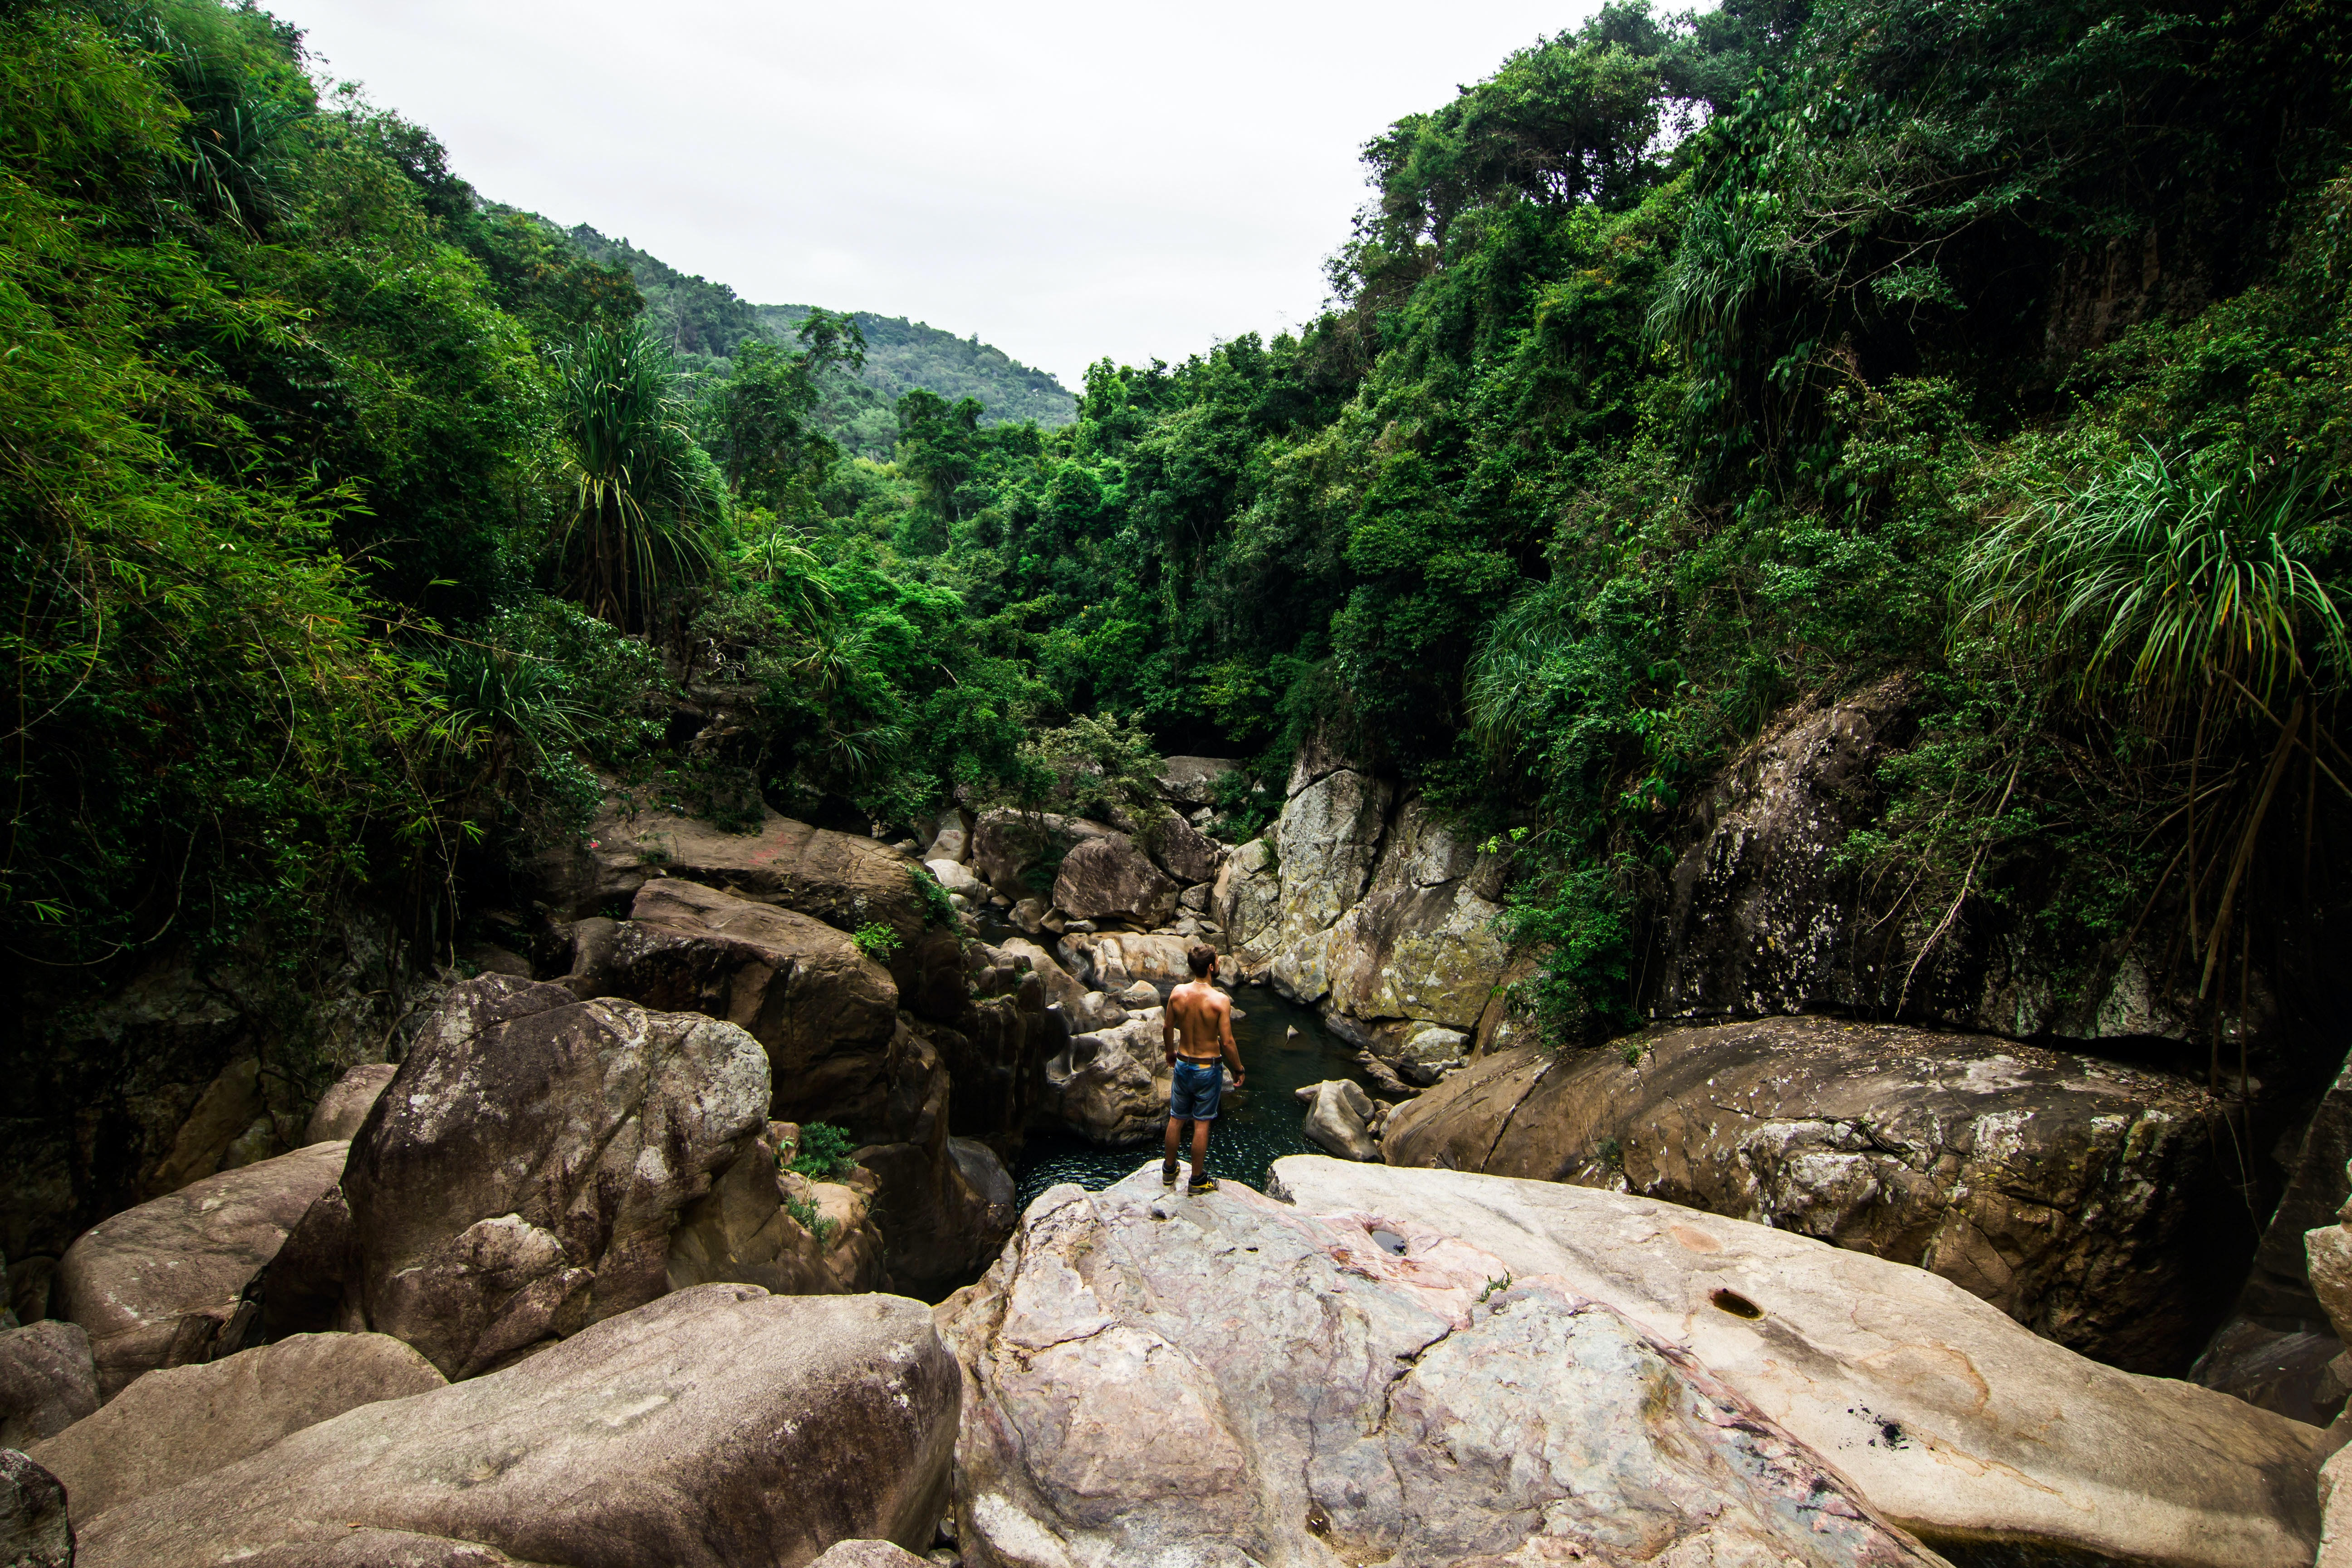 A shirtless man on smooth rocks overlooking a river in Vietnam